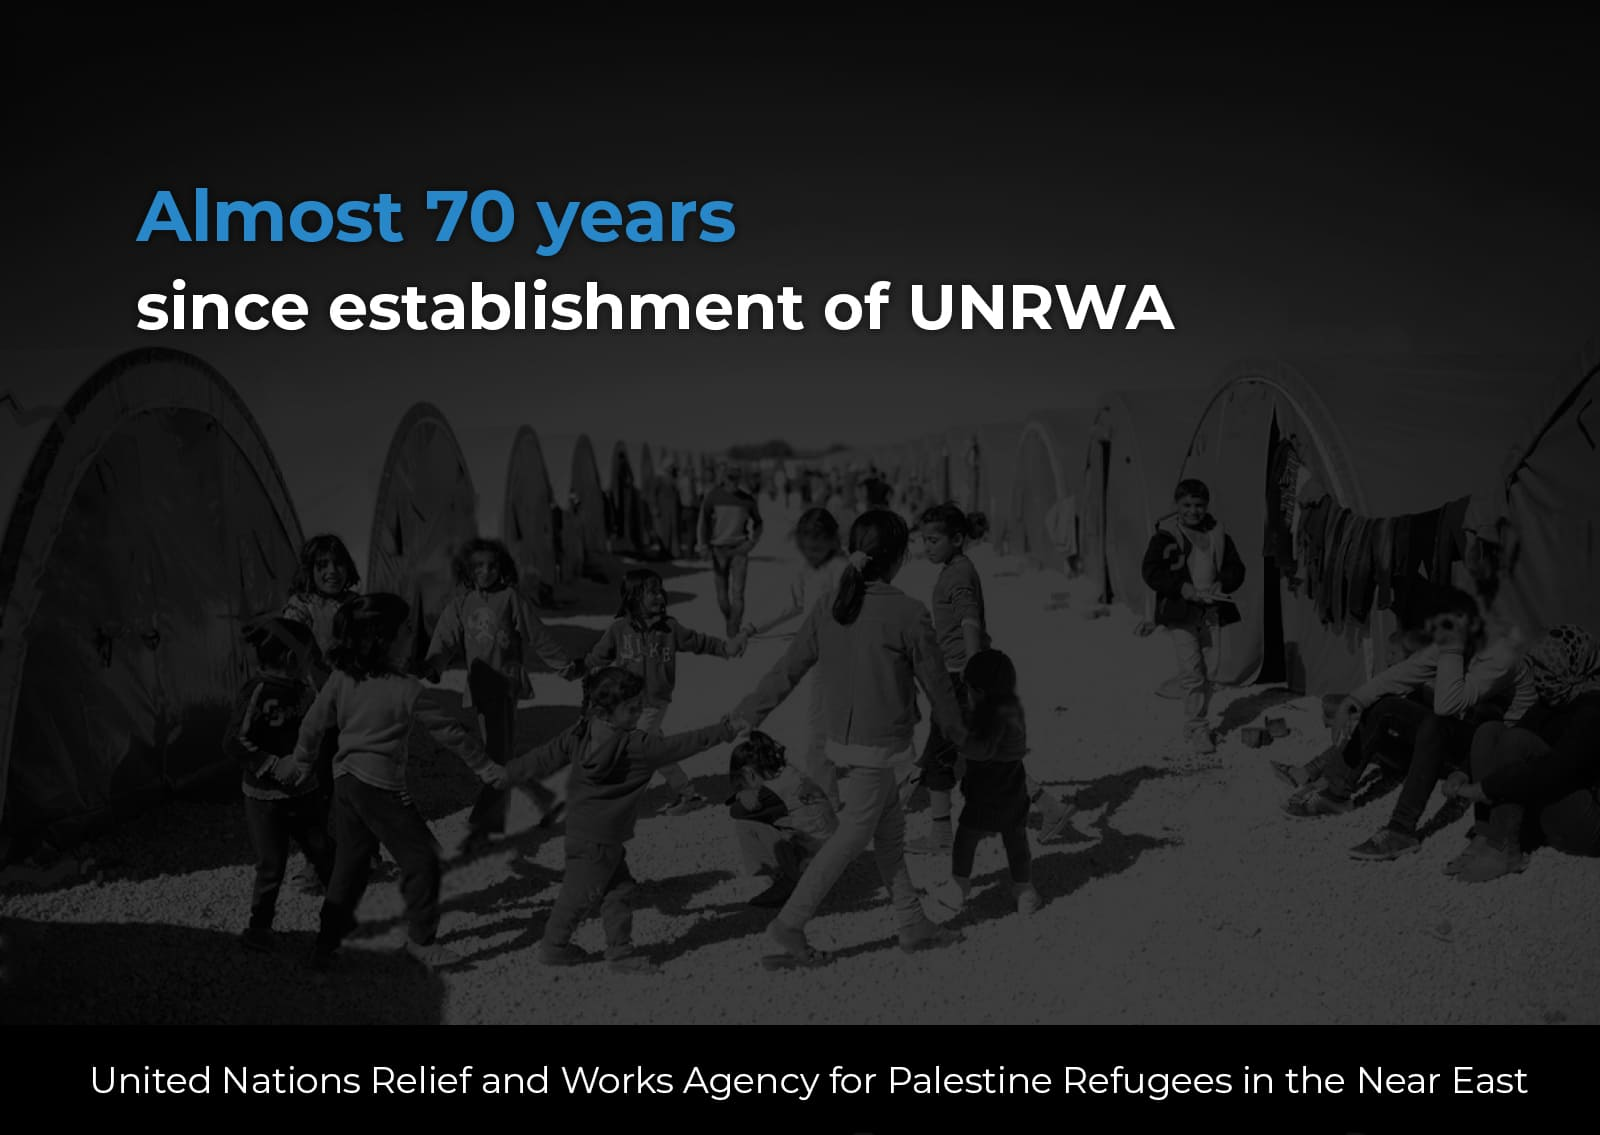 Decline of UNRWA services